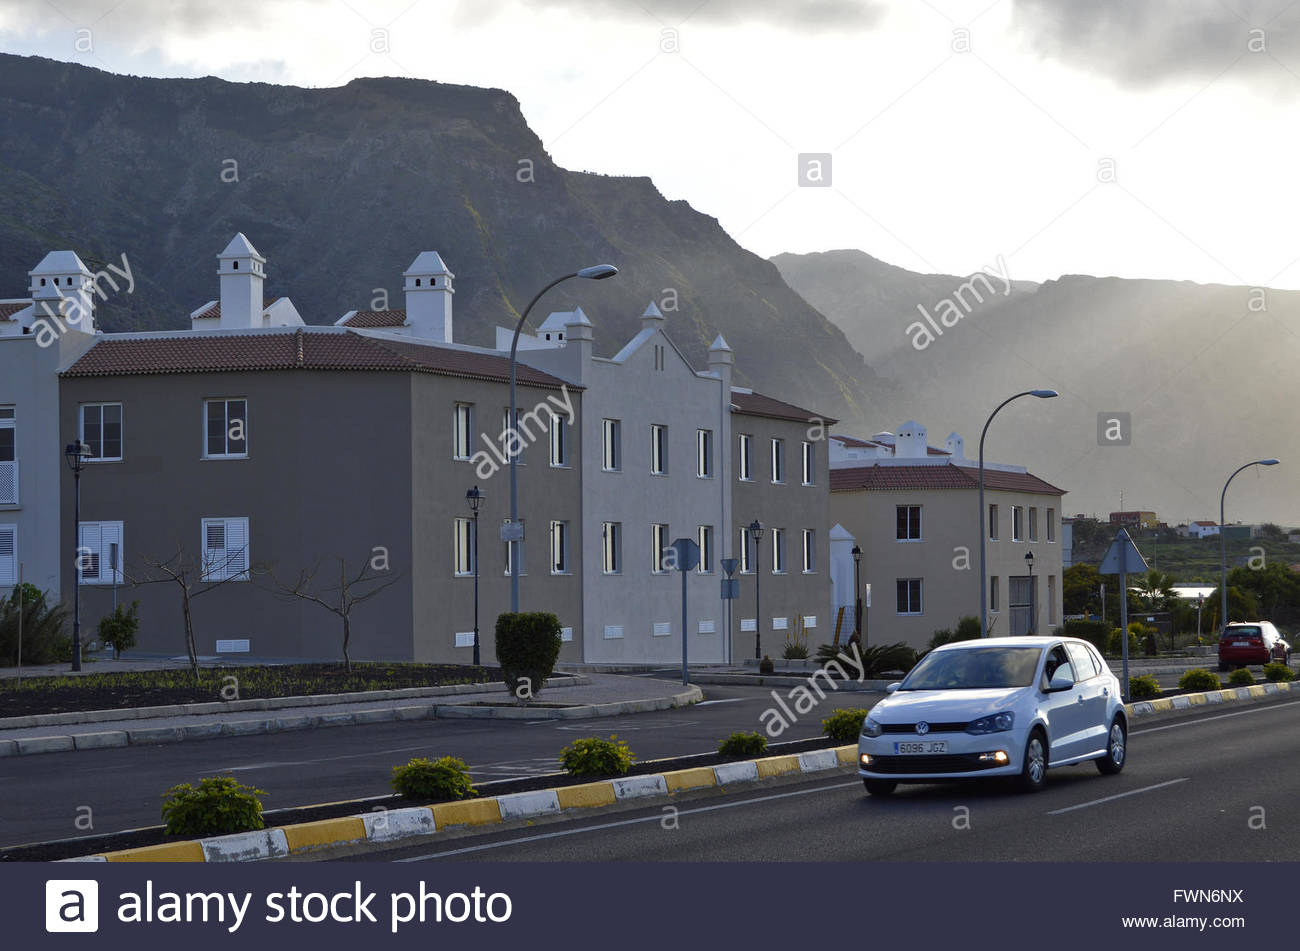 Town of Buenavista Del Norte modern houses with Teno mountains in background, Tenerife Canary Islands Spain - Stock Image